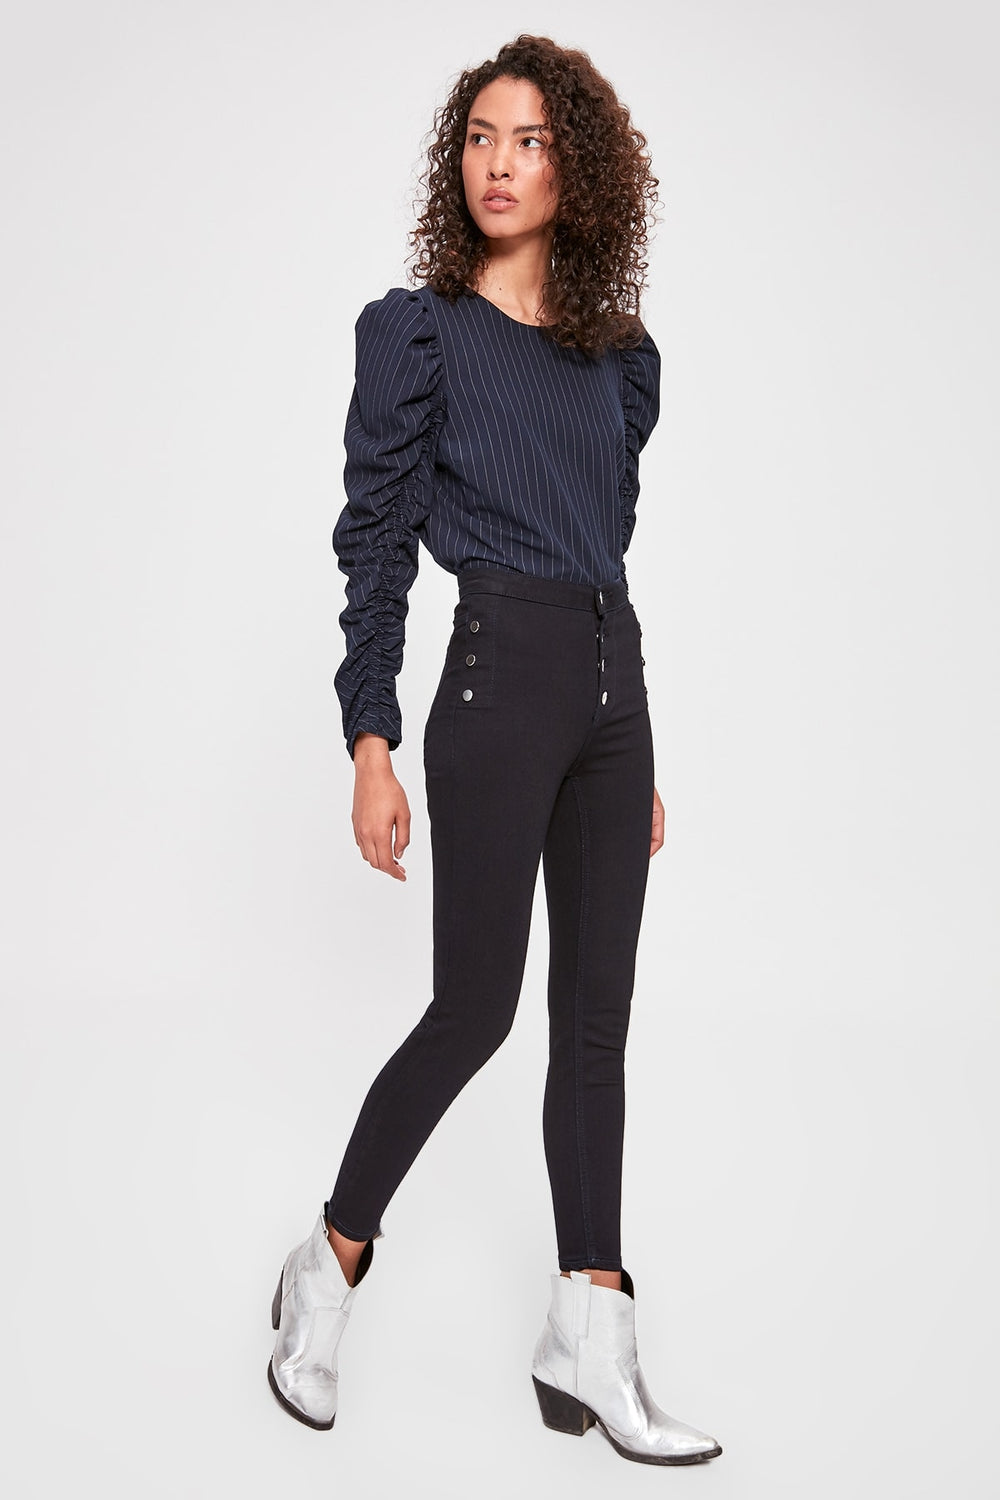 Miss Zut Miss Zut Button Detail High Waist Skinny Jeans Miss Zut &CO